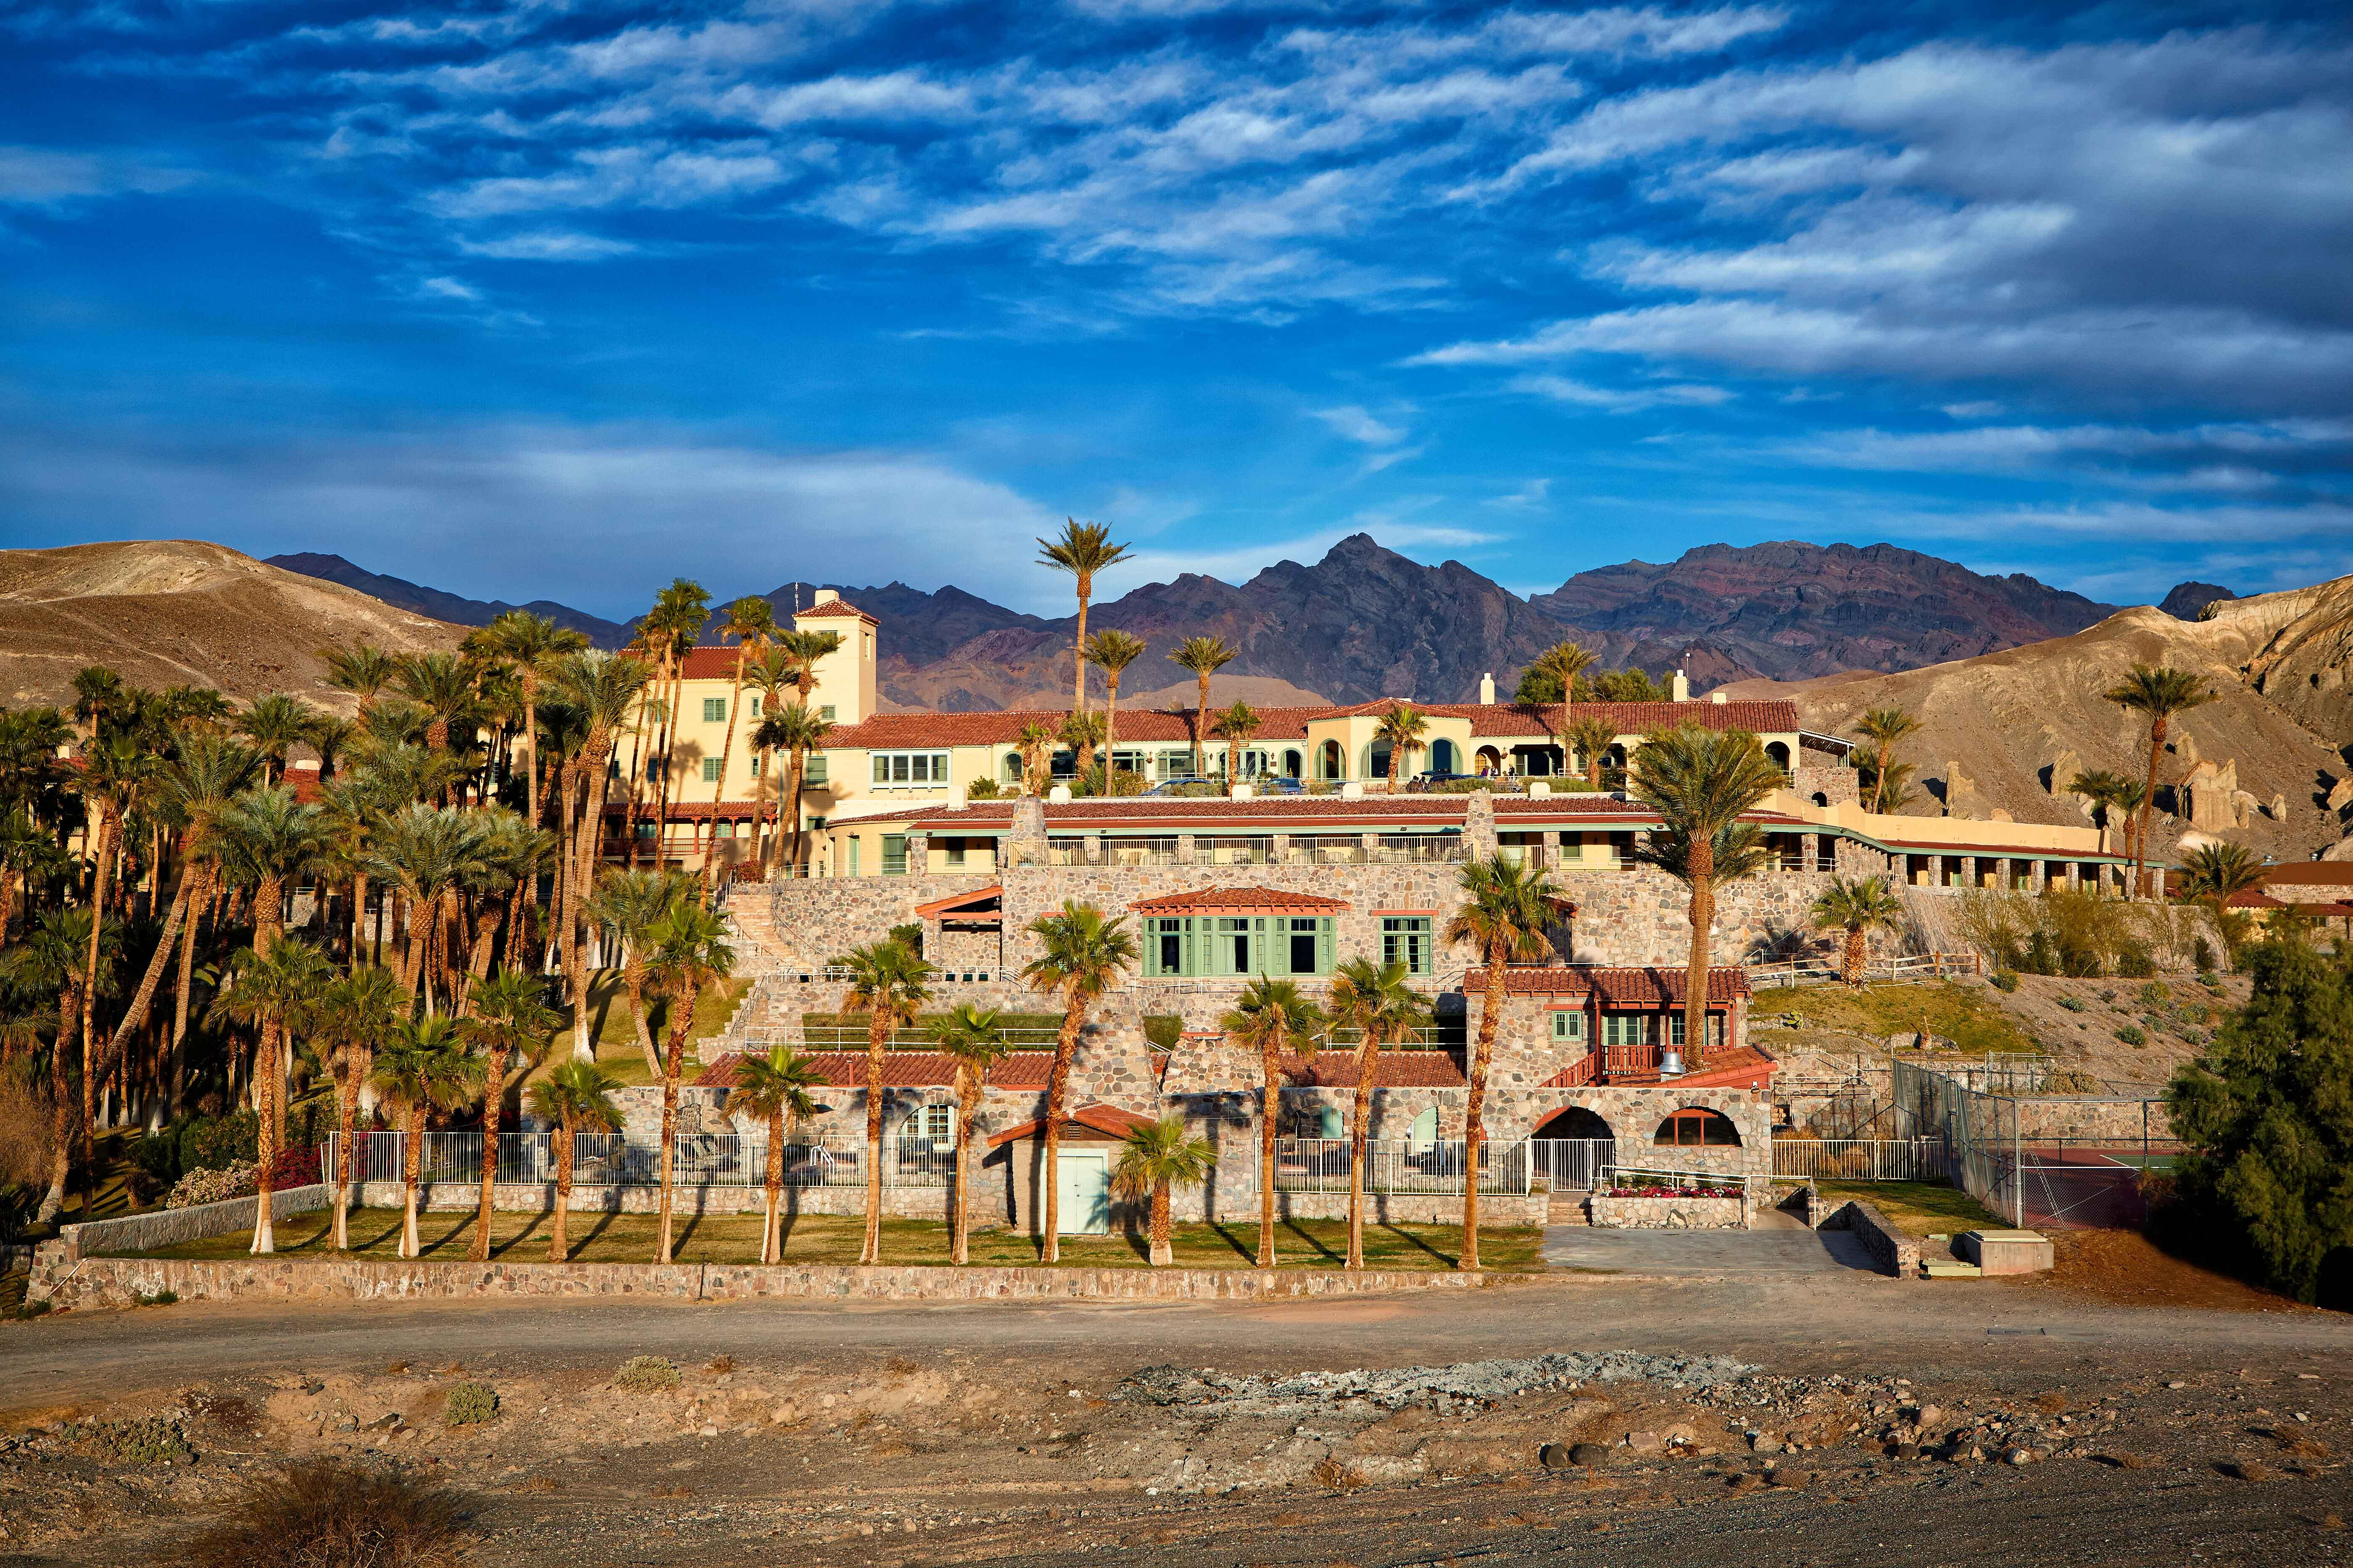 Furnace Creek Inn and Ranch Resort